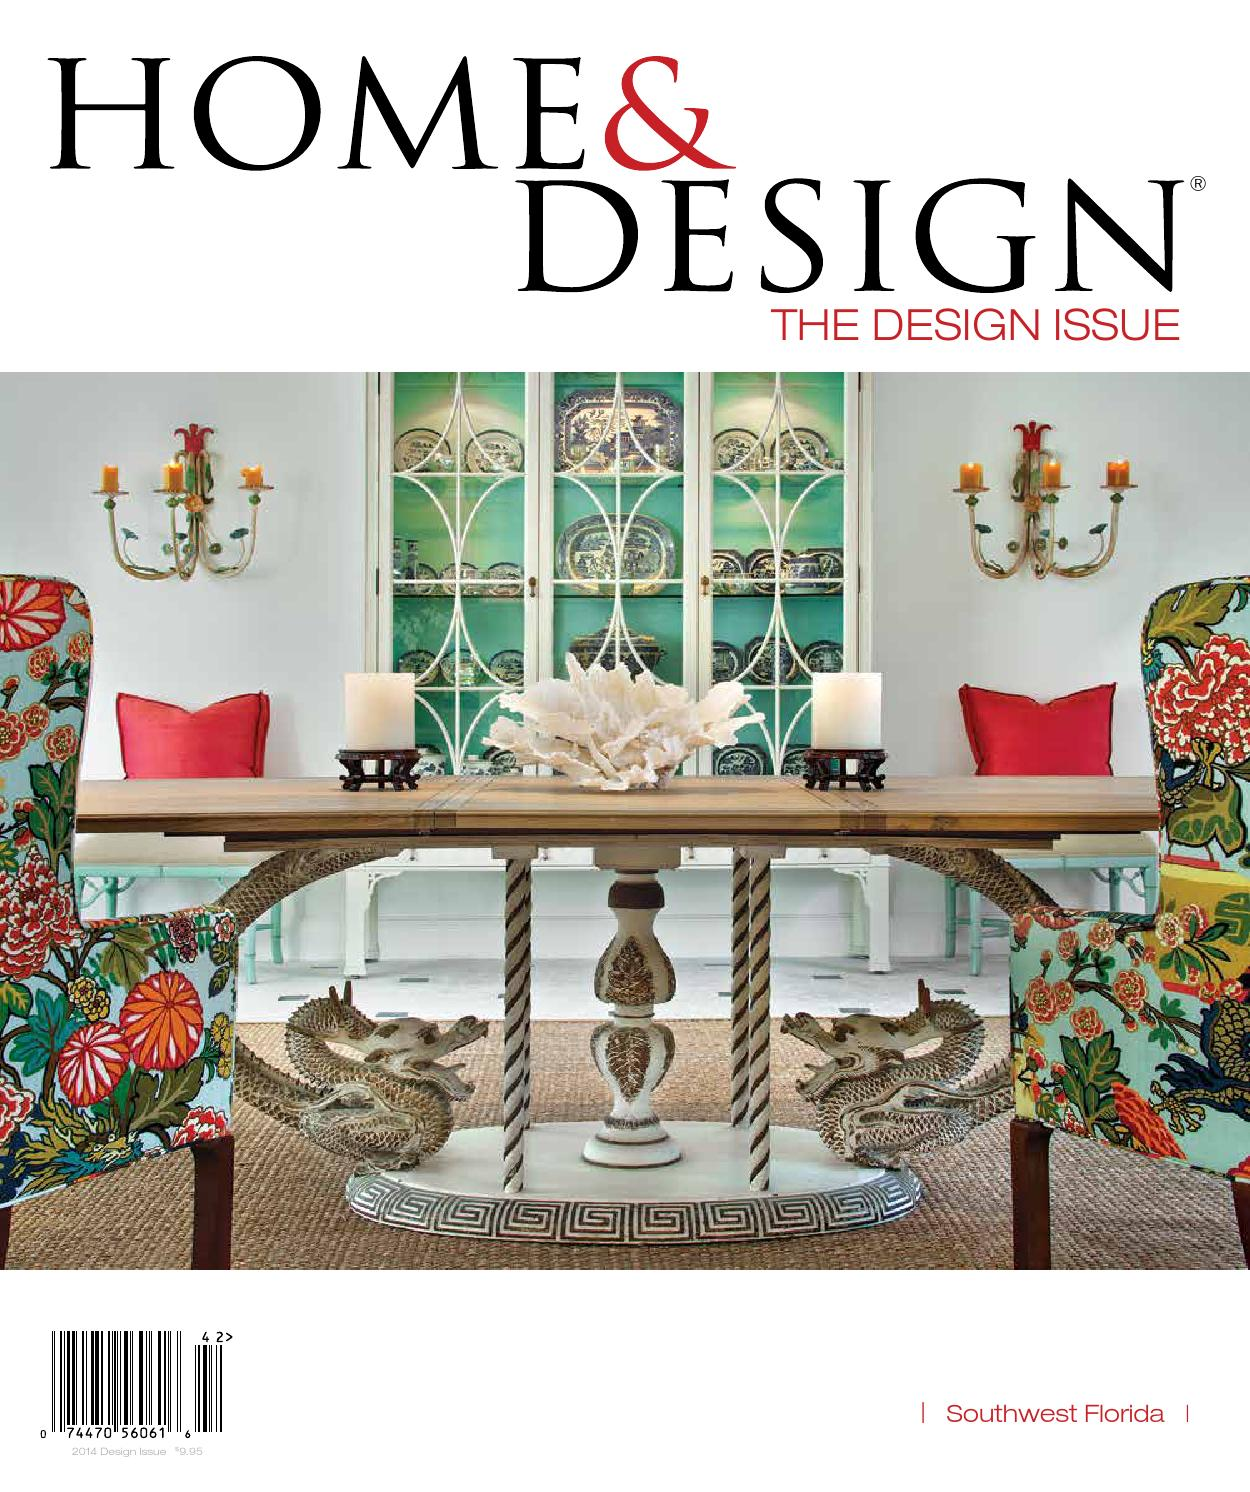 Home Design Magazine Design Issue 2014 Southwest Florida Edition By Anthony Spano Issuu